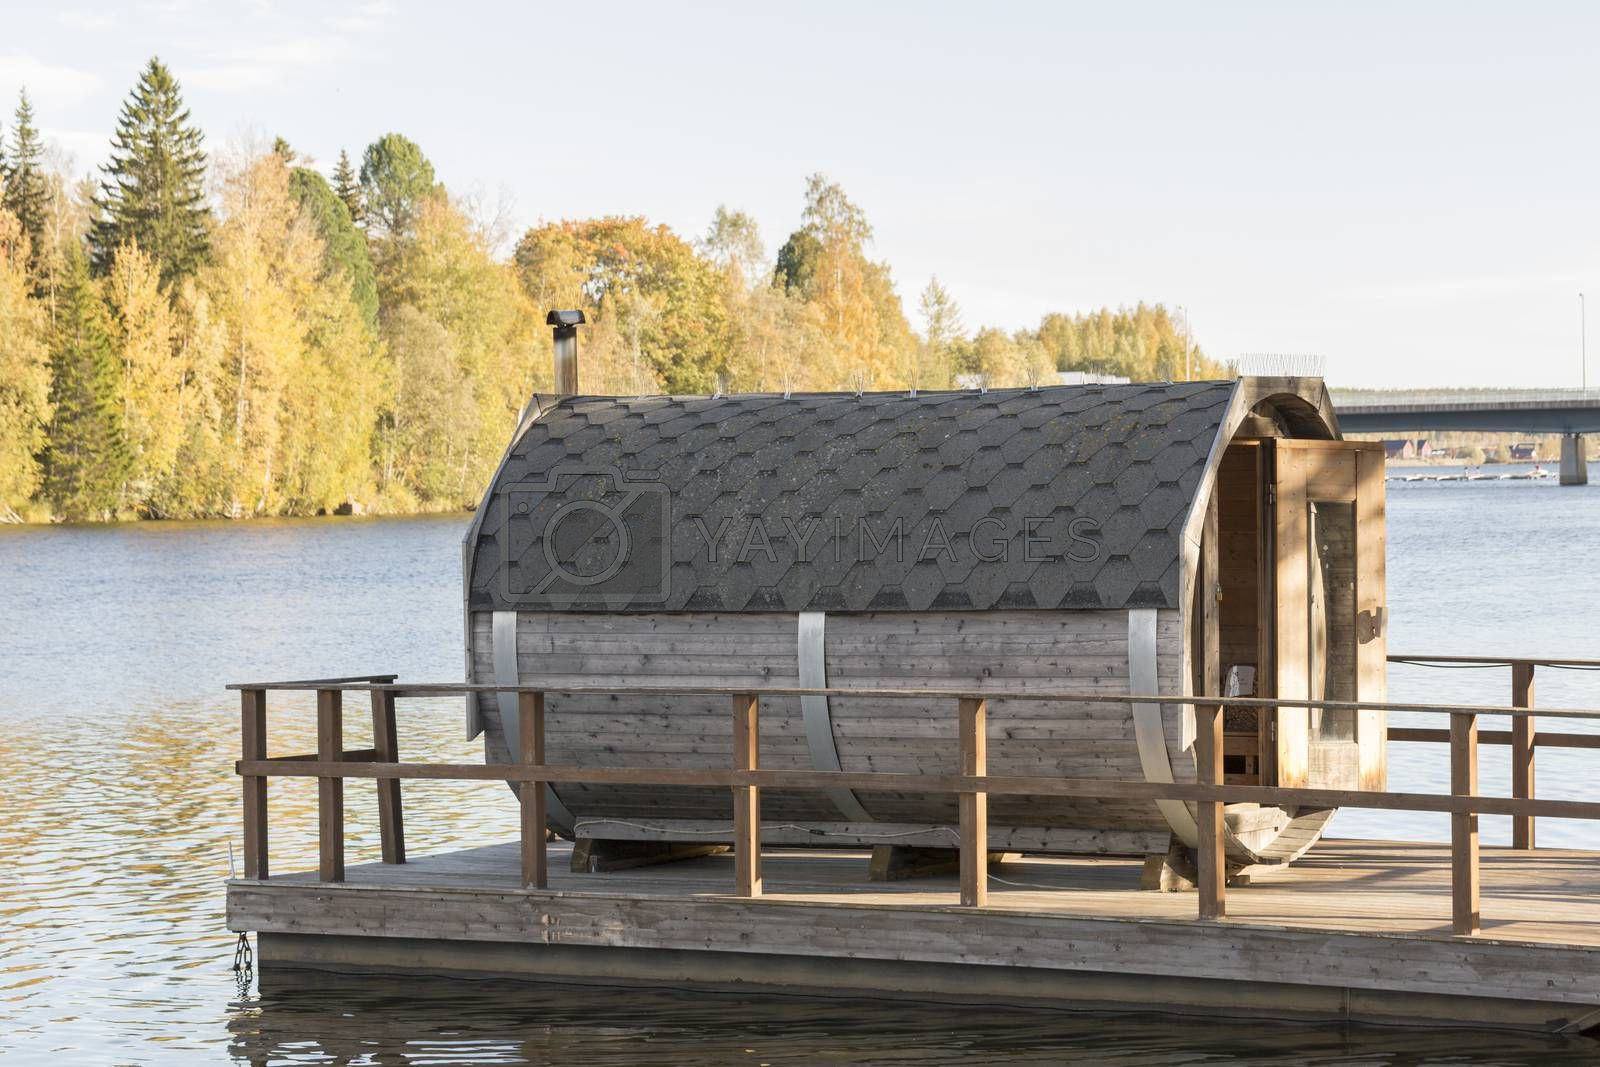 Royalty free image of Sauna Floating on River by Emmoth